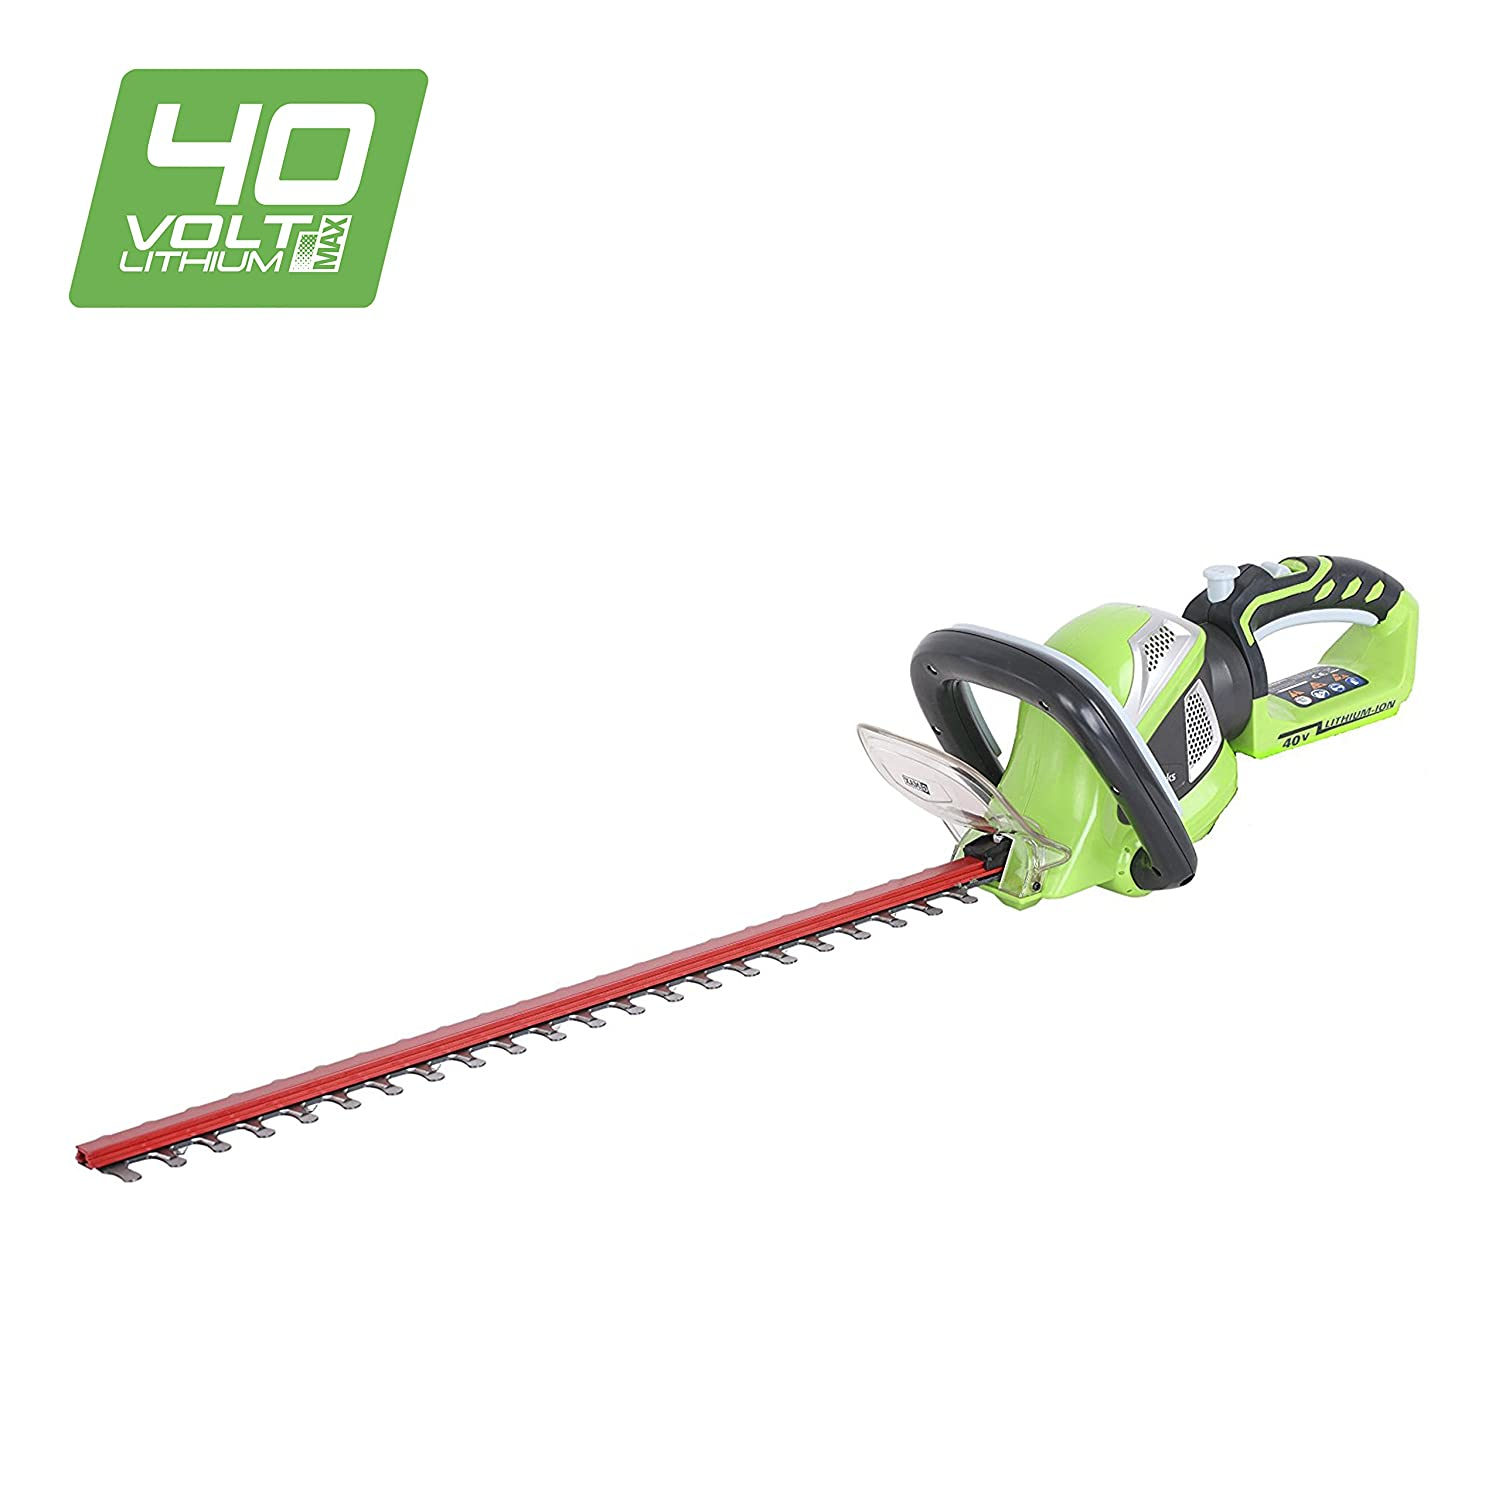 manual long handled hedge trimmers